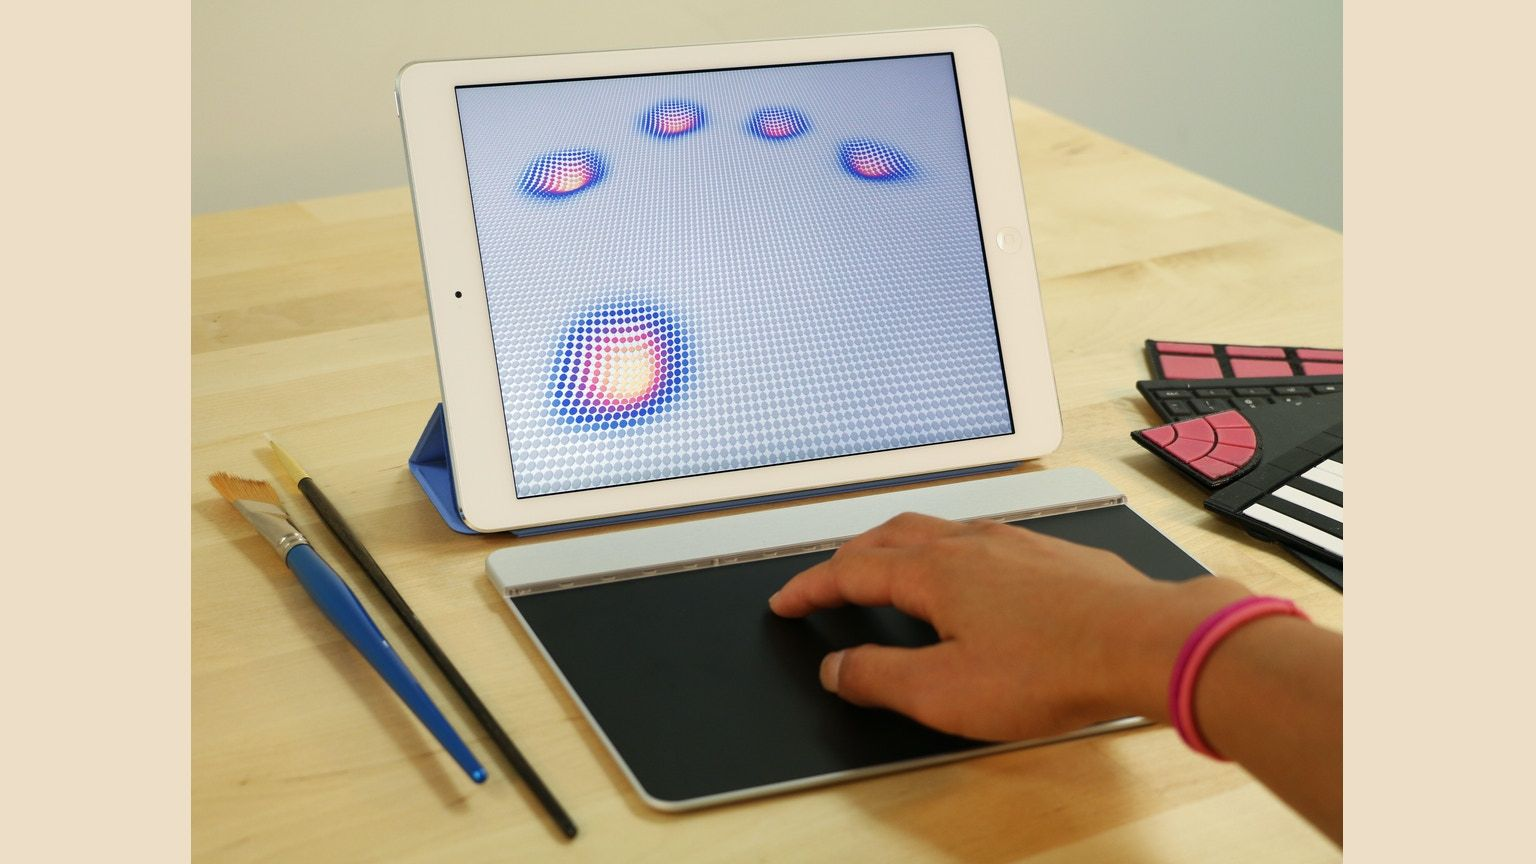 The first pressure-sensitive, multi-touch input device that enables users to interact with the digital world like never before.